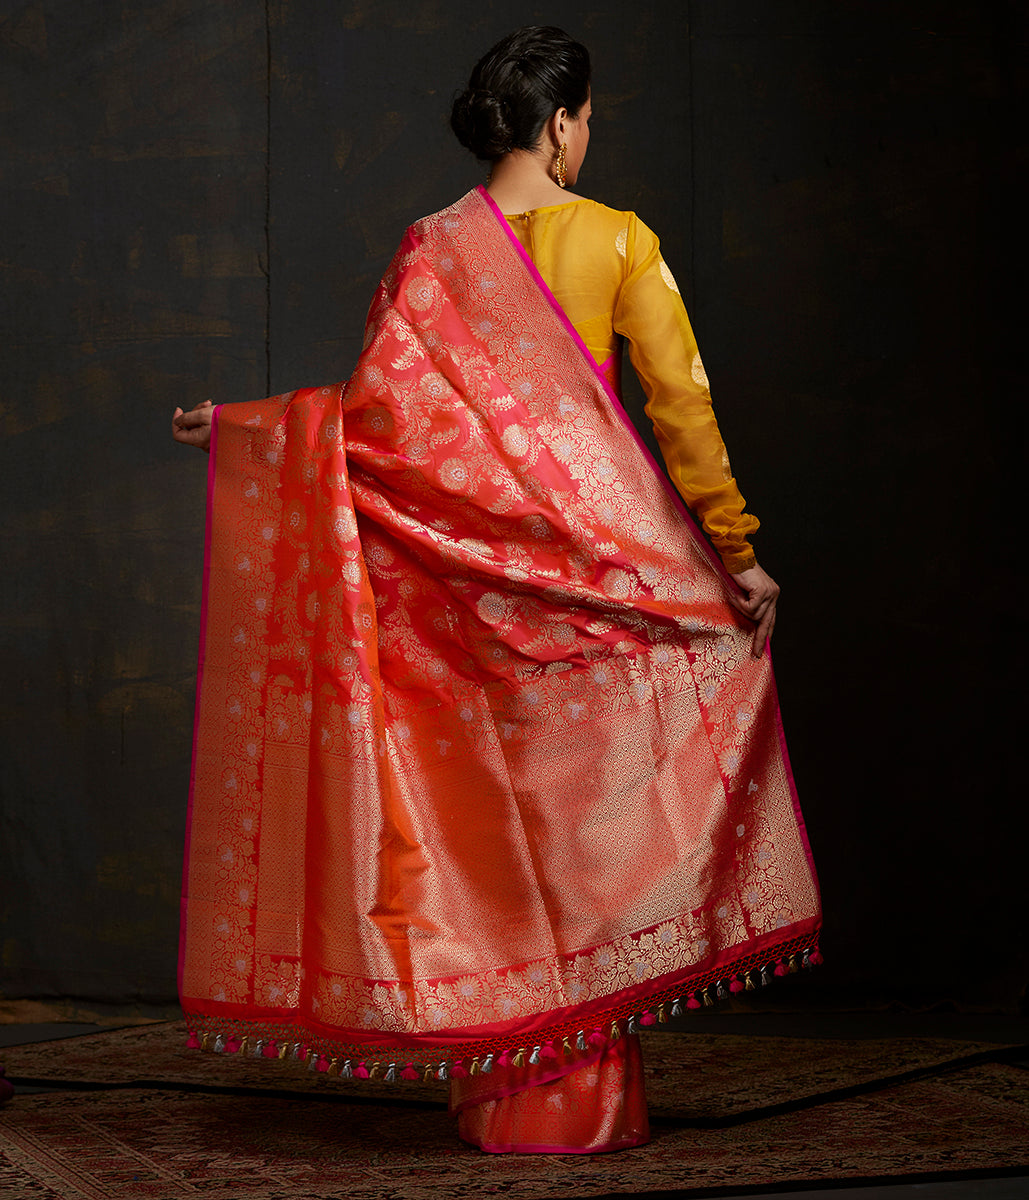 Handwoven sona rupa kadhwa jangla in Pink and orange dual tone